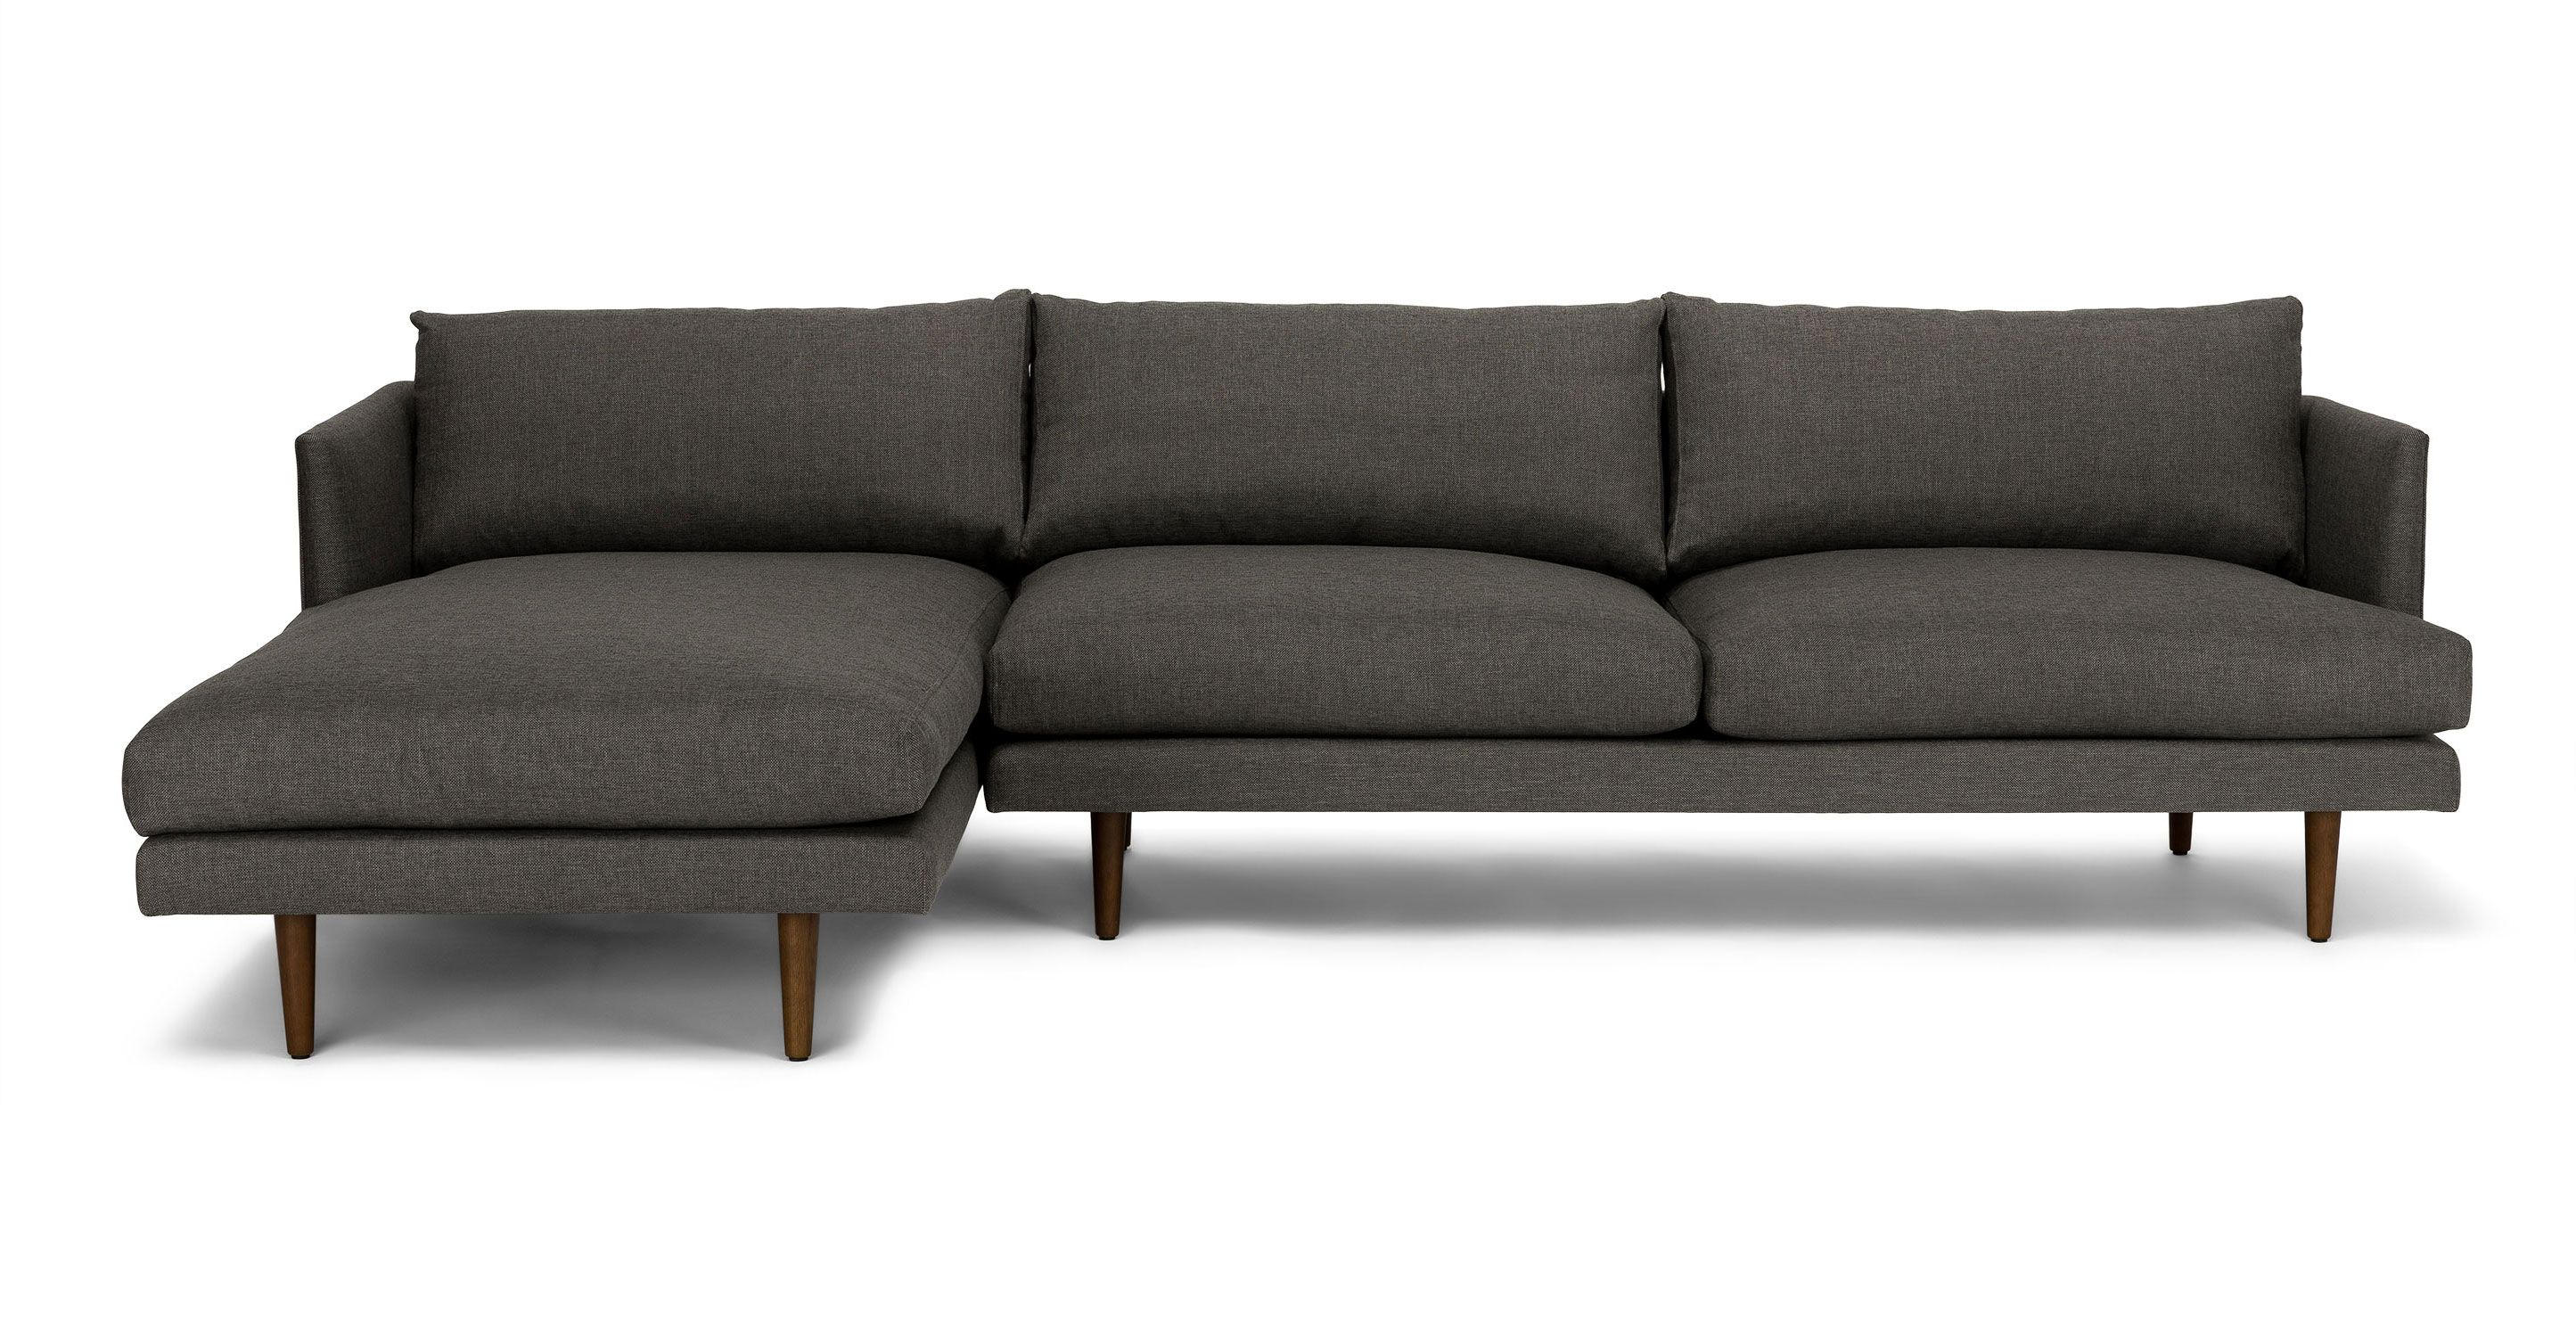 Burrard graphite gray left sectional sofa sectionals article modern mid century and scandinavian furniture